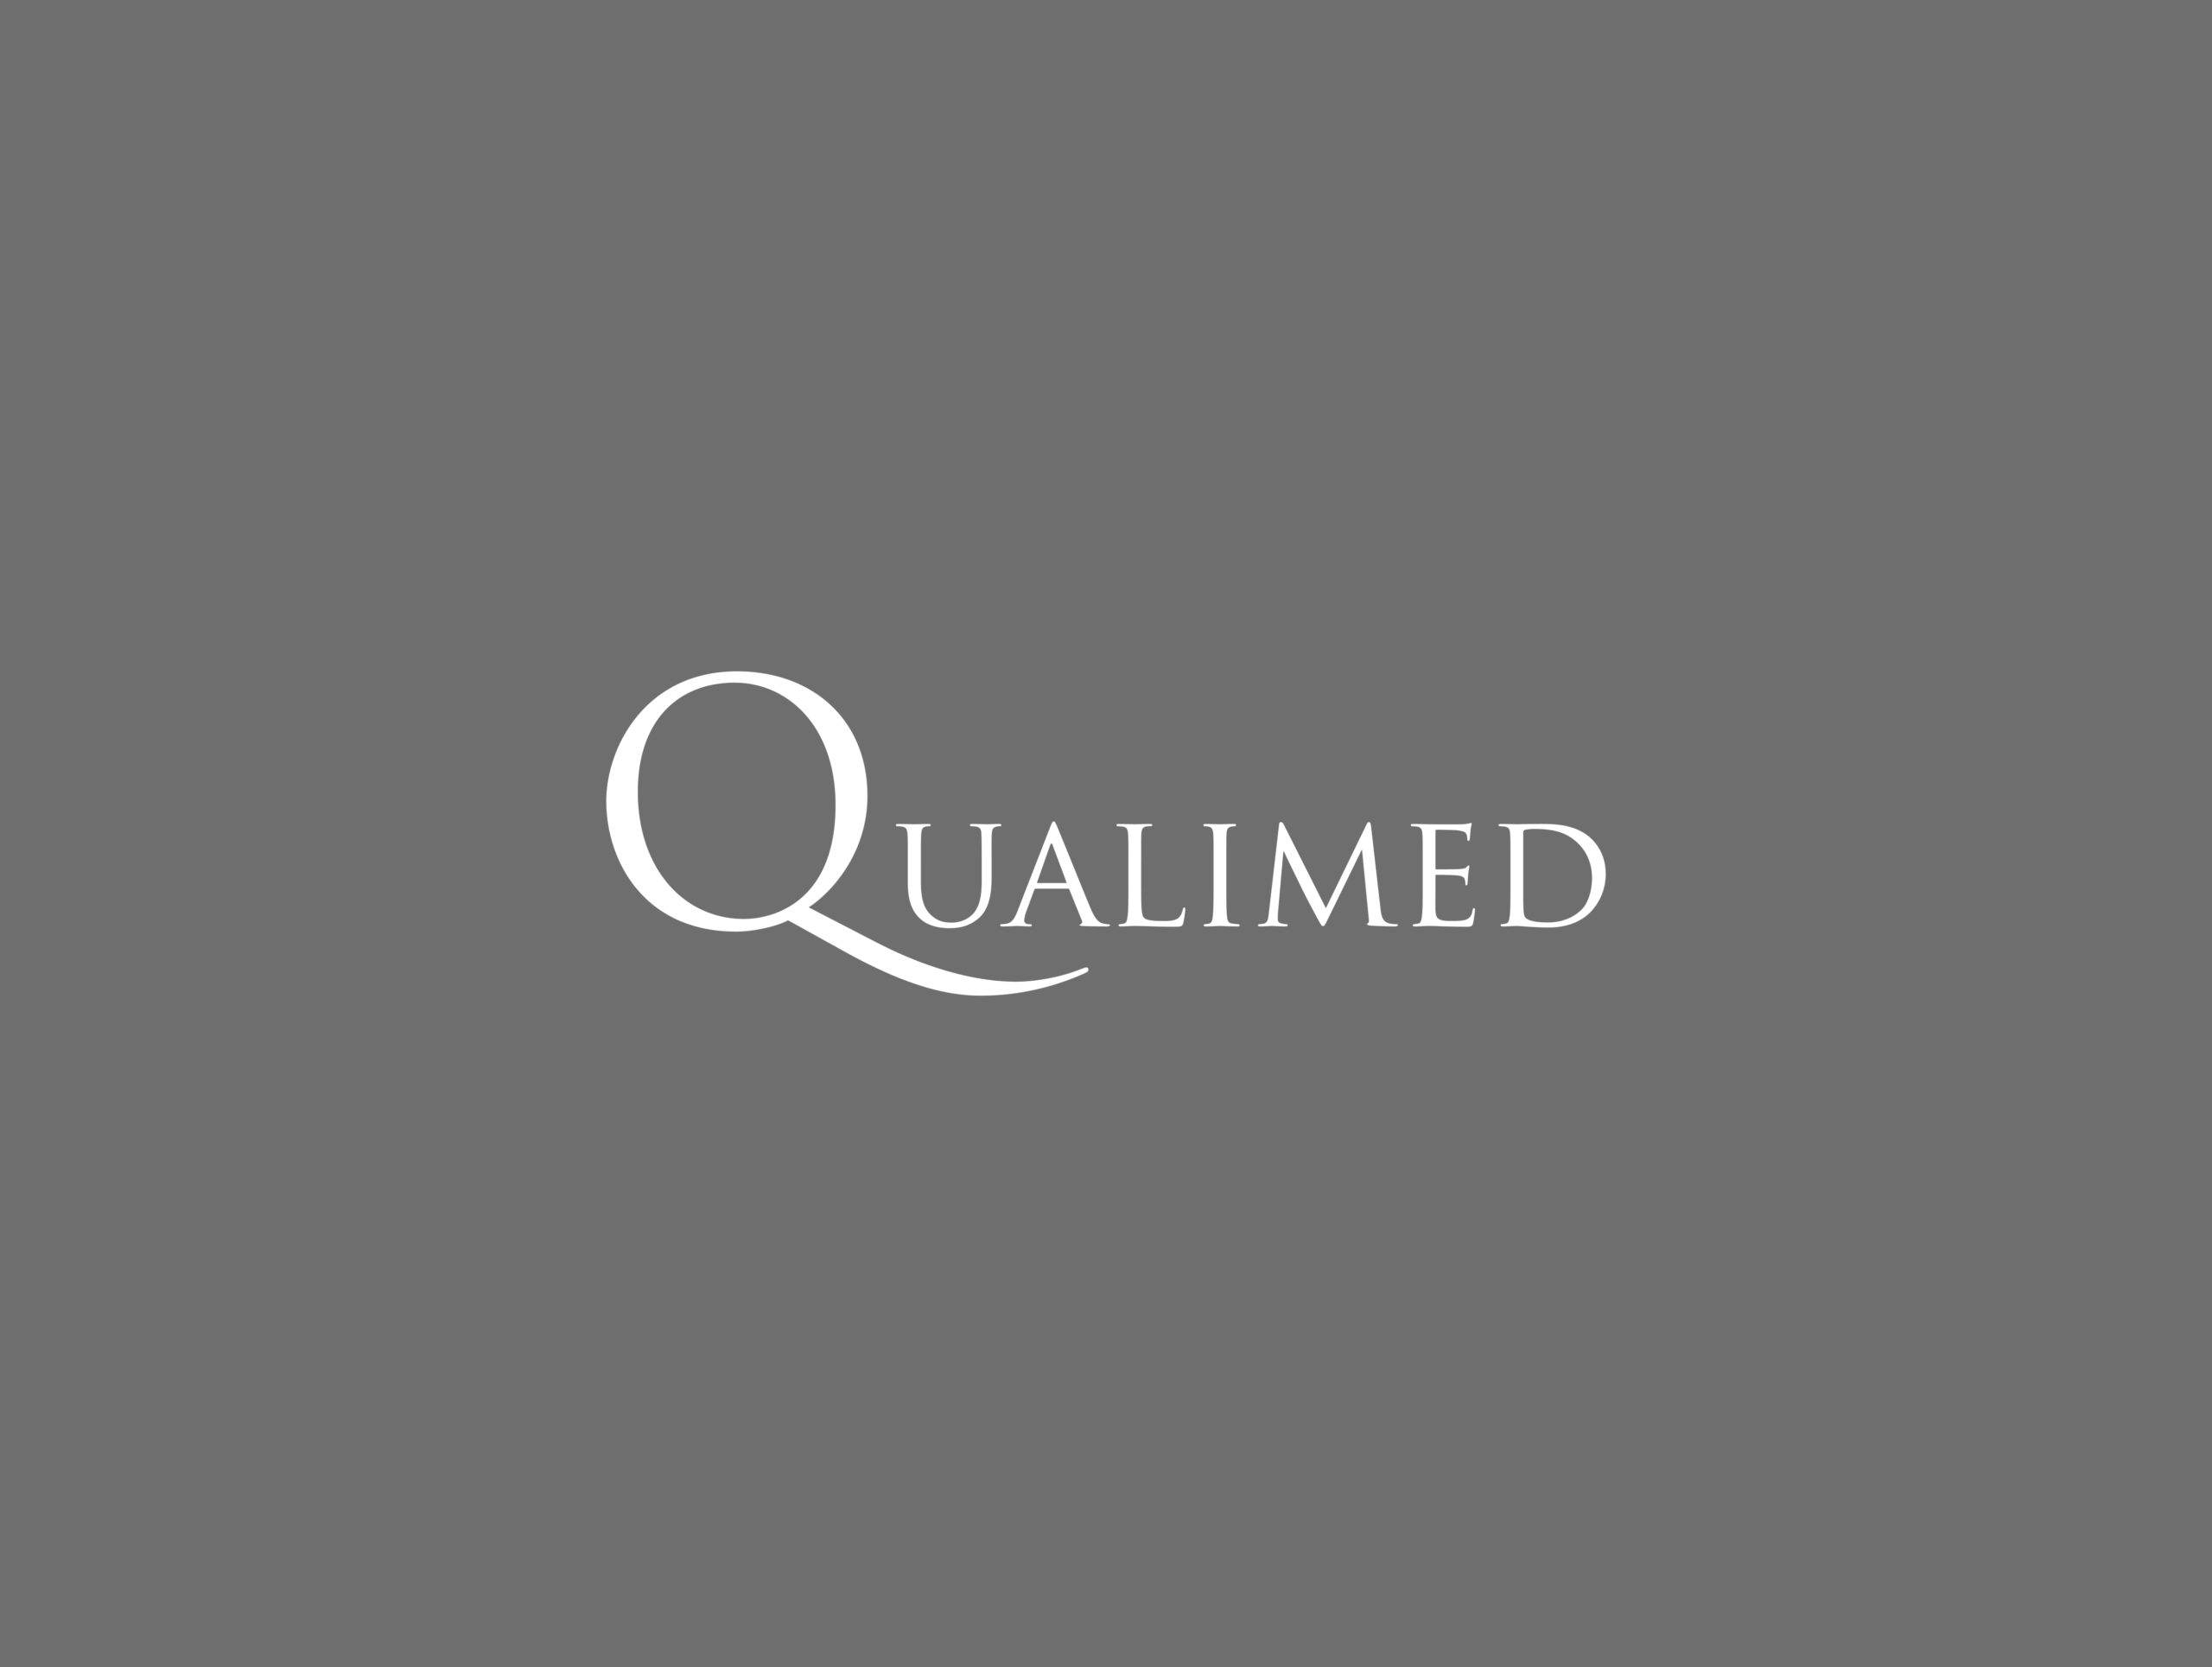 Qualimed, the partner for colored contact lenses